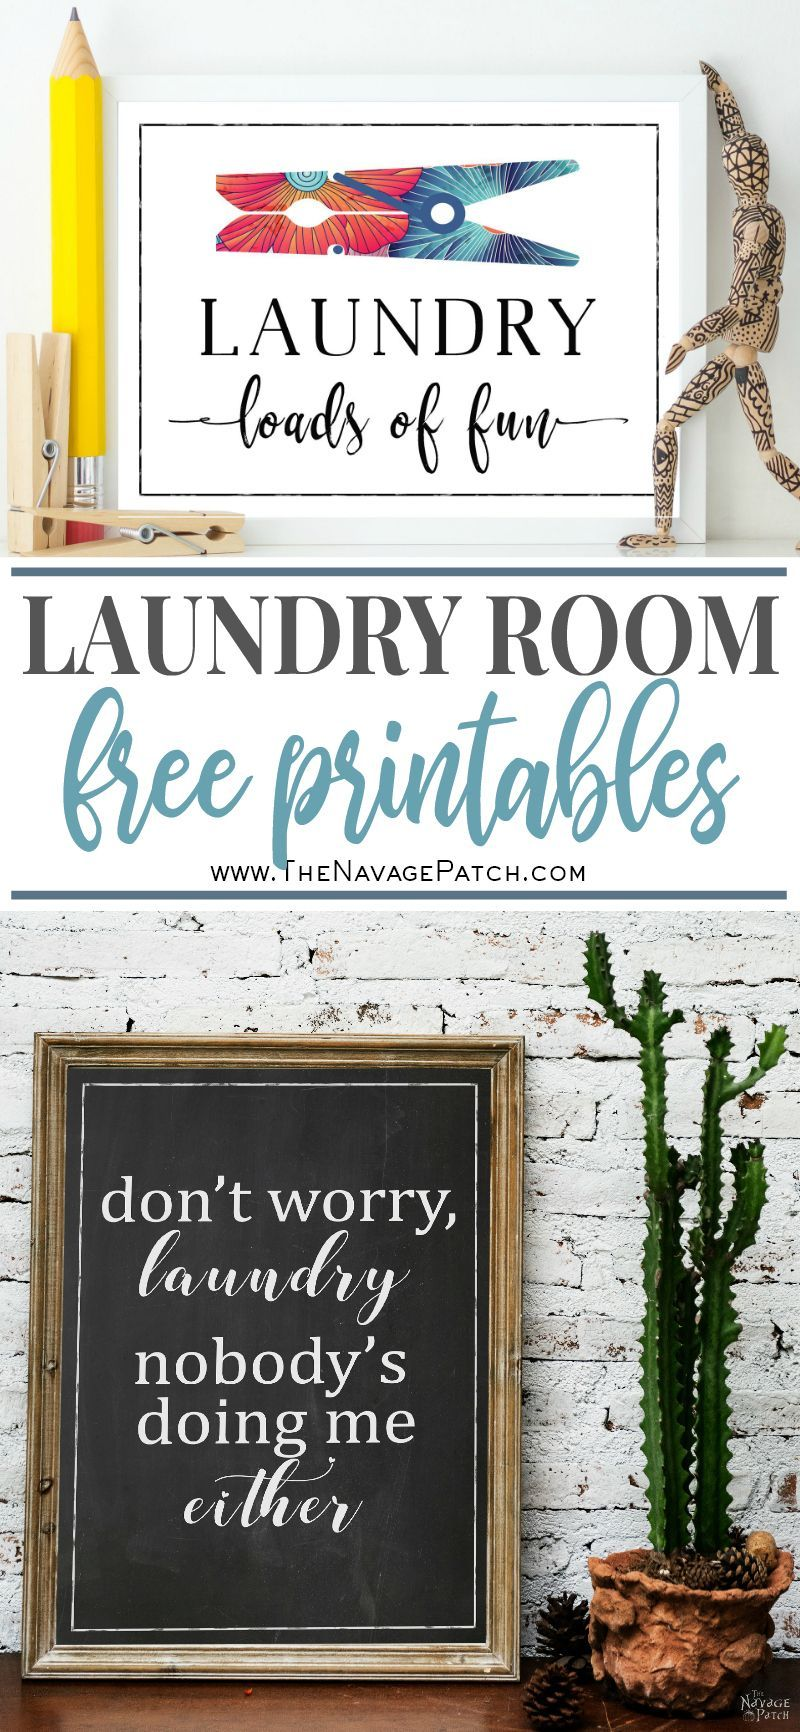 Free Printable Wall Art for Laundry Room images